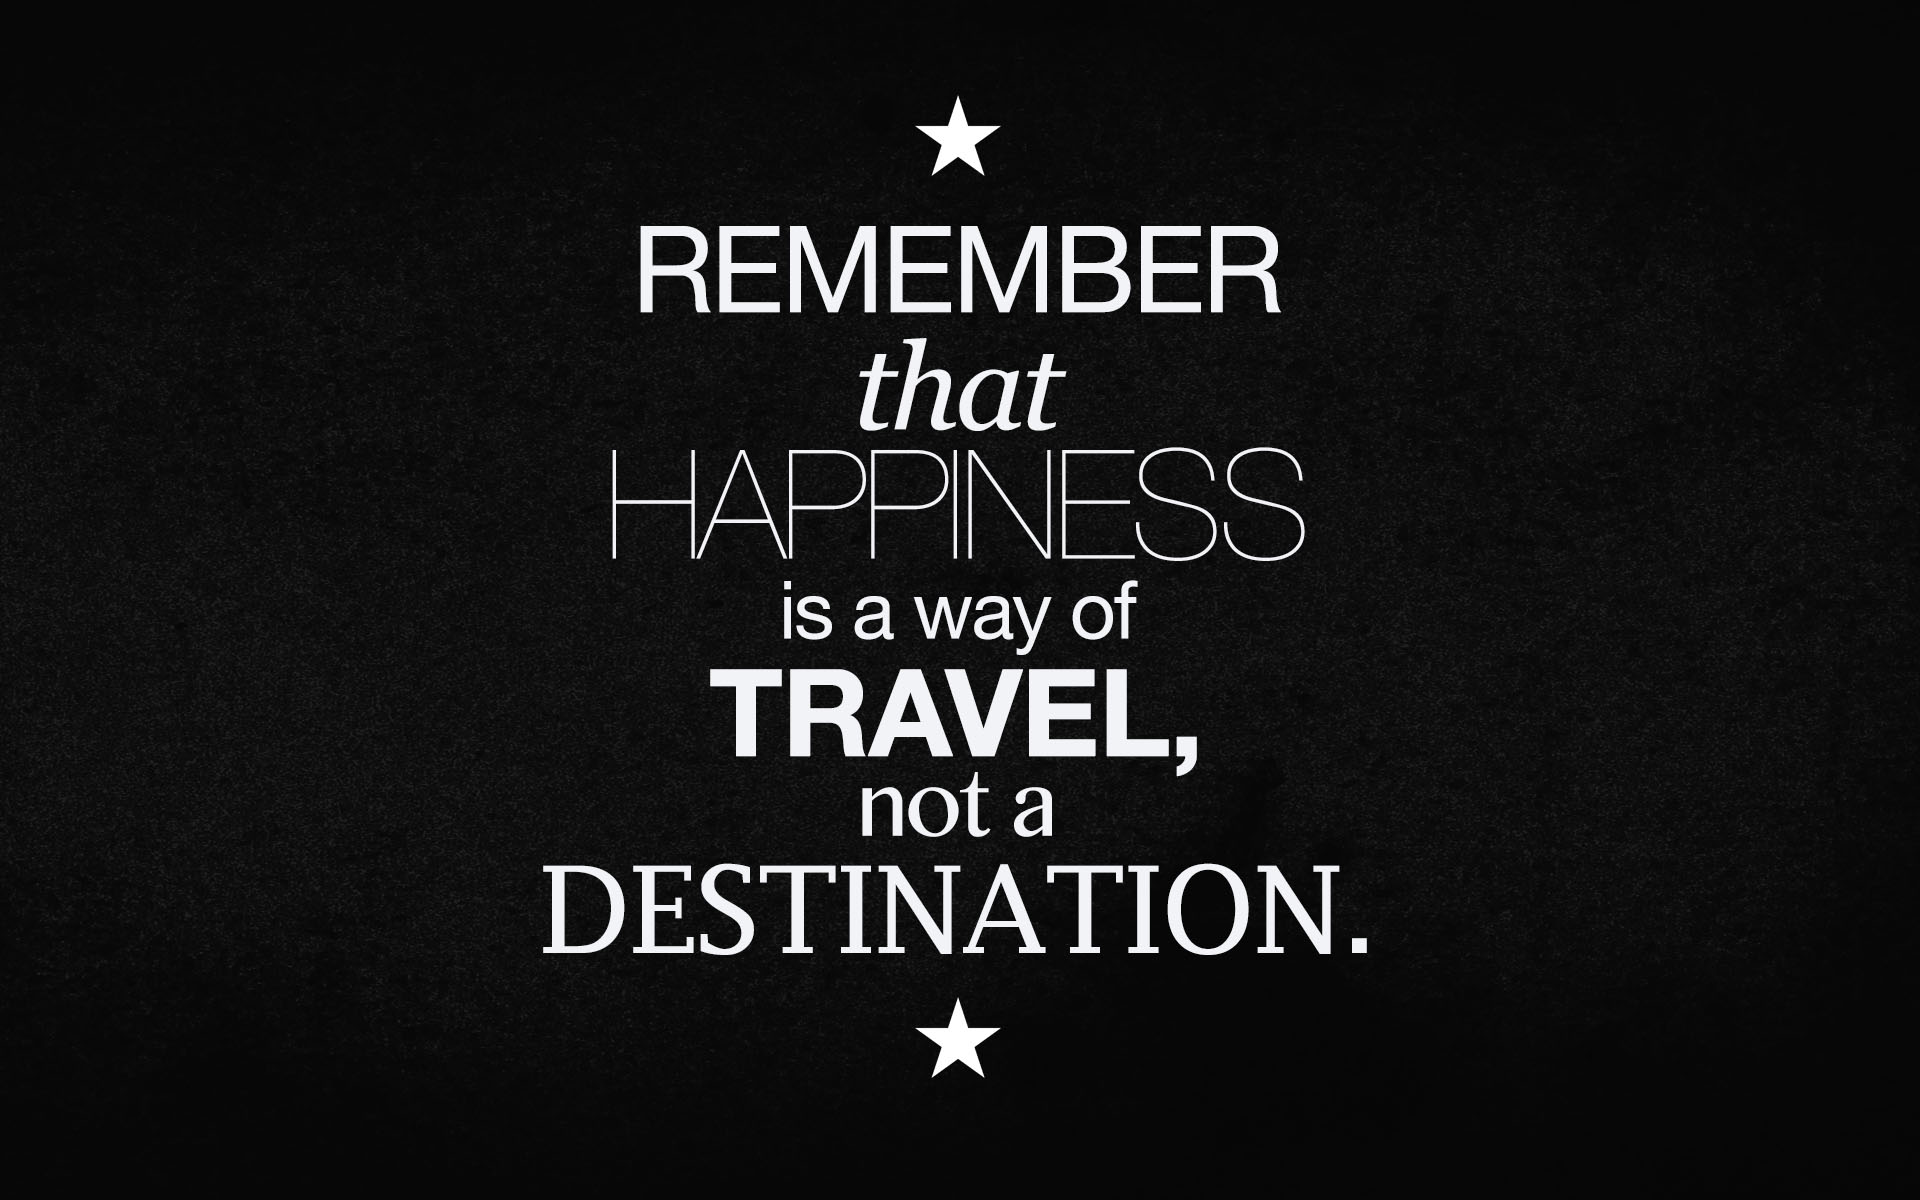 Motivational Quotes Wallpapers Iphone 6 Happiness Is A Way Of Travel Inspirational Quotes Quotivee